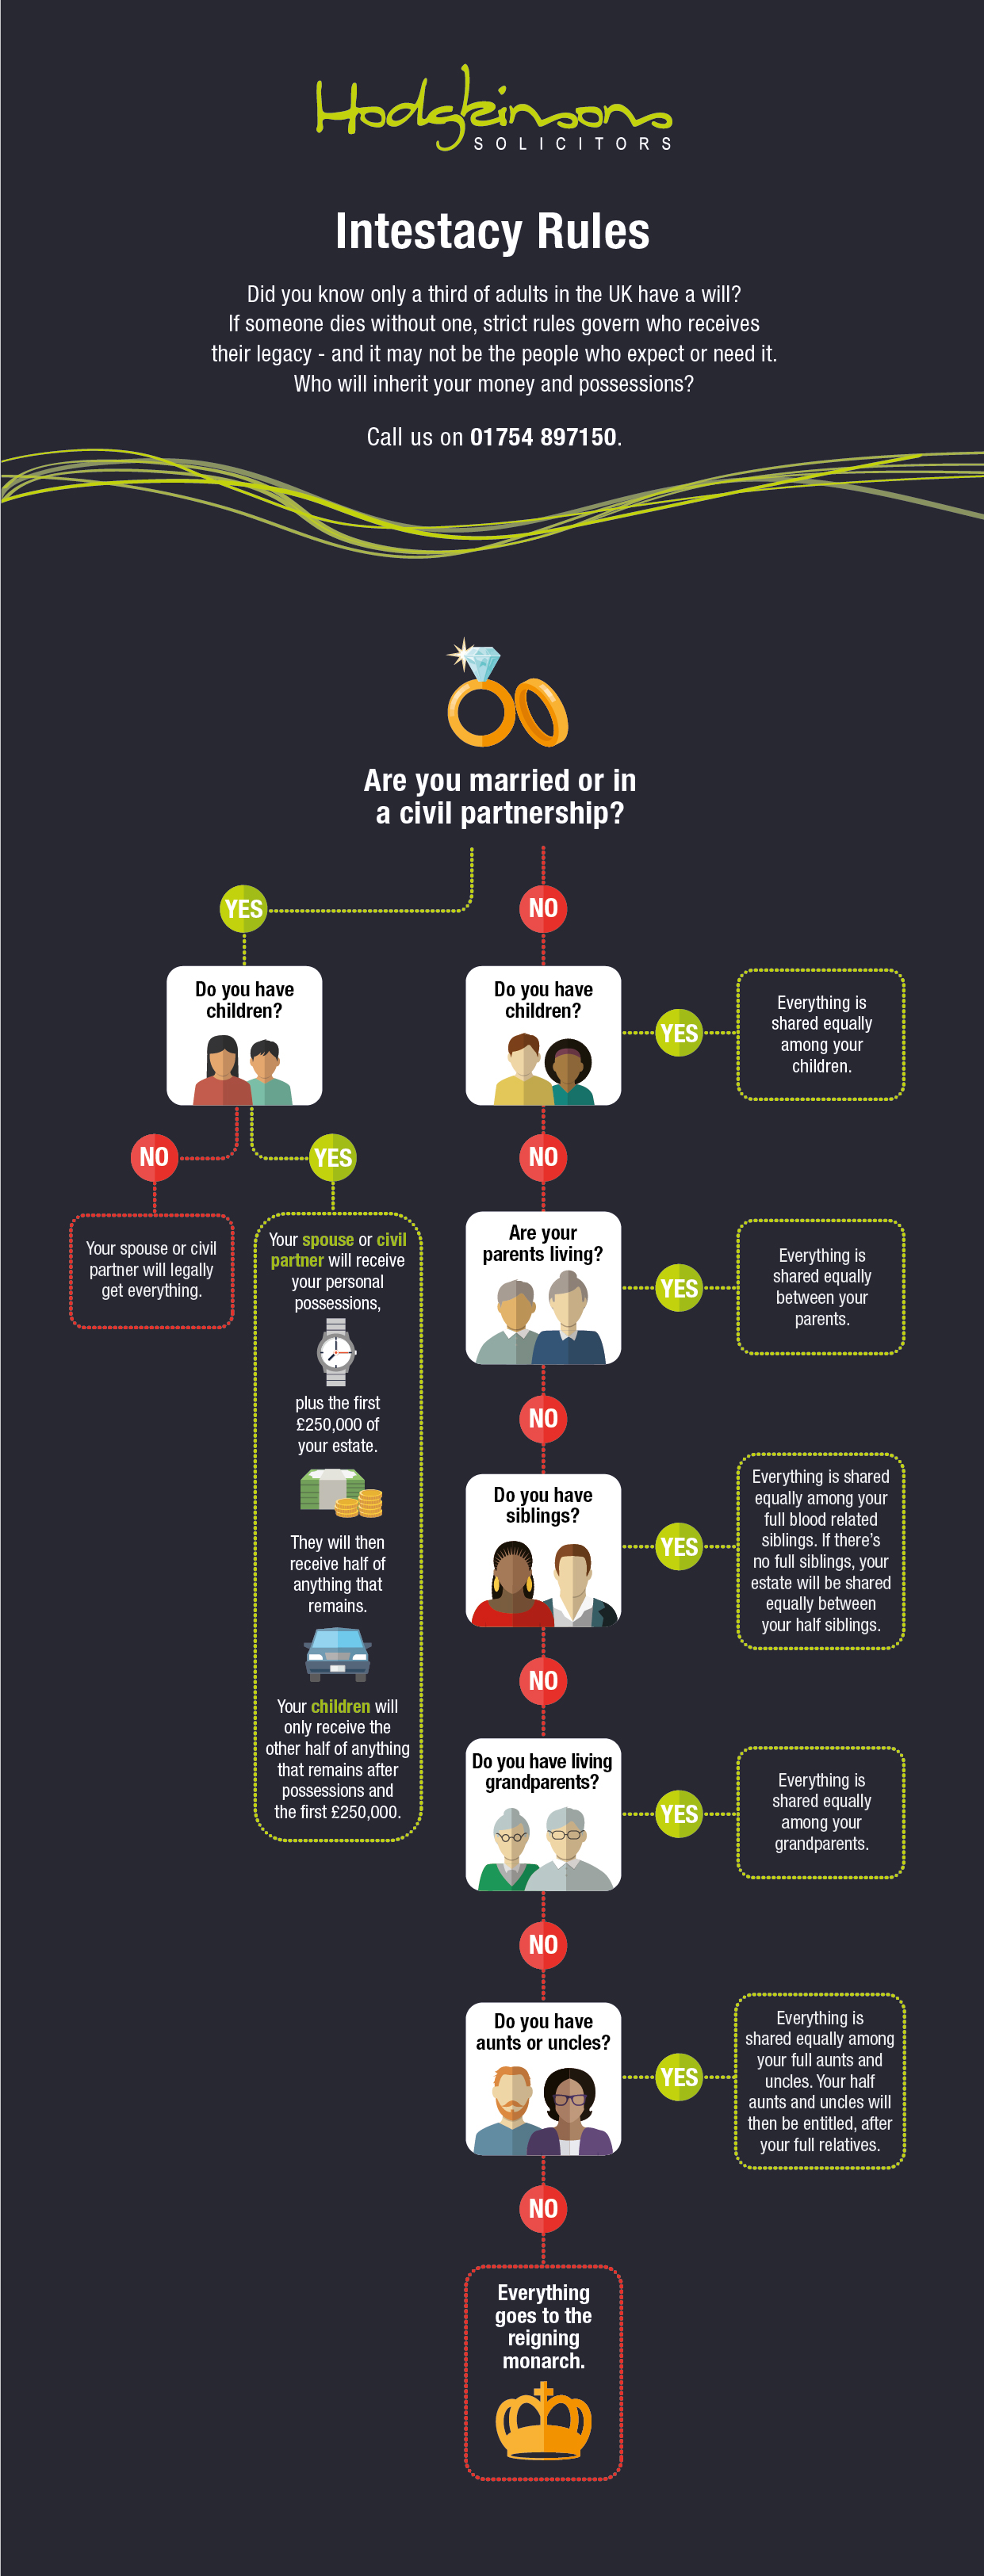 Intestacy rules flowchart